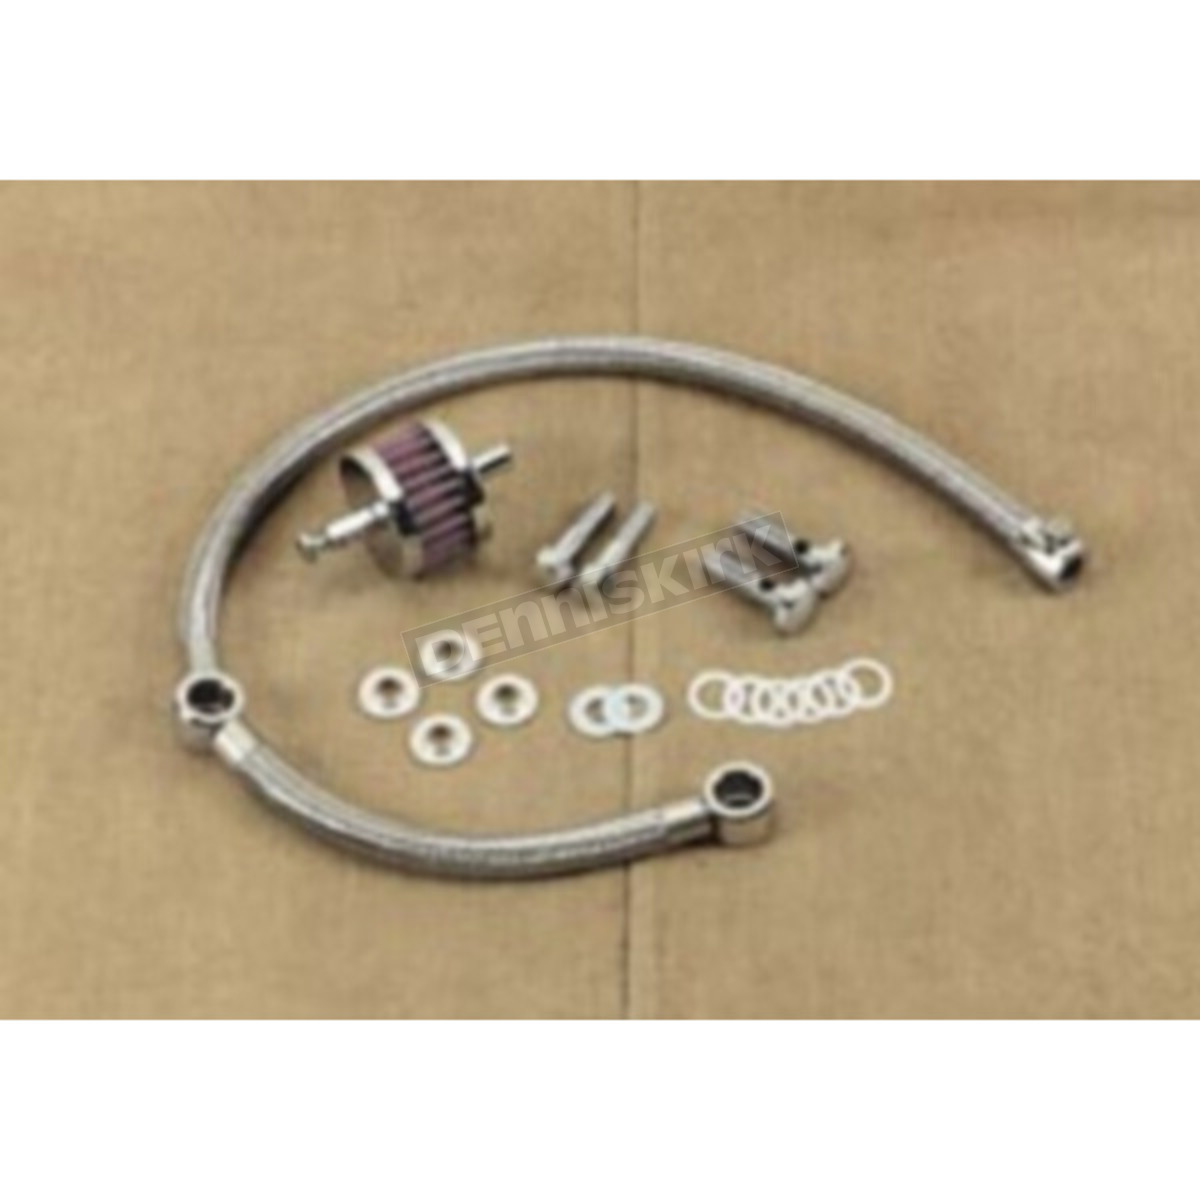 Braided Hose Crankcase Breather Kit - DS-289118